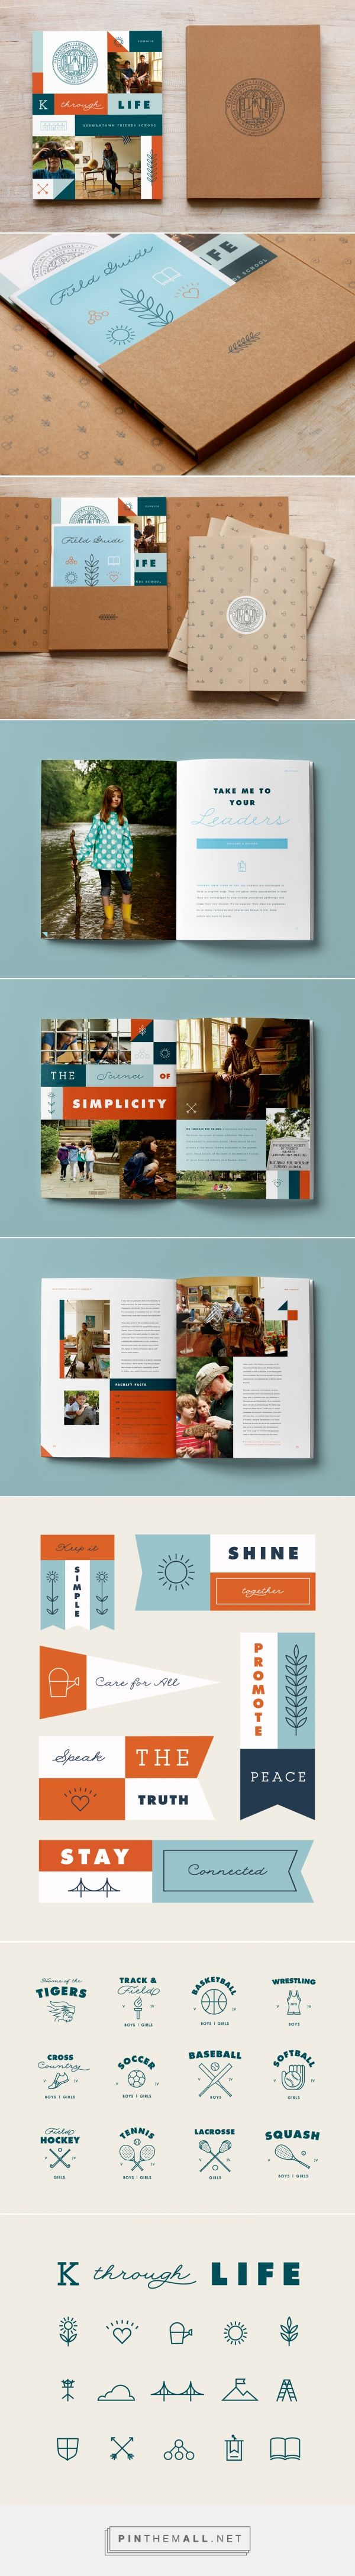 i will design book ebook interior or layout - Booklet Design Ideas